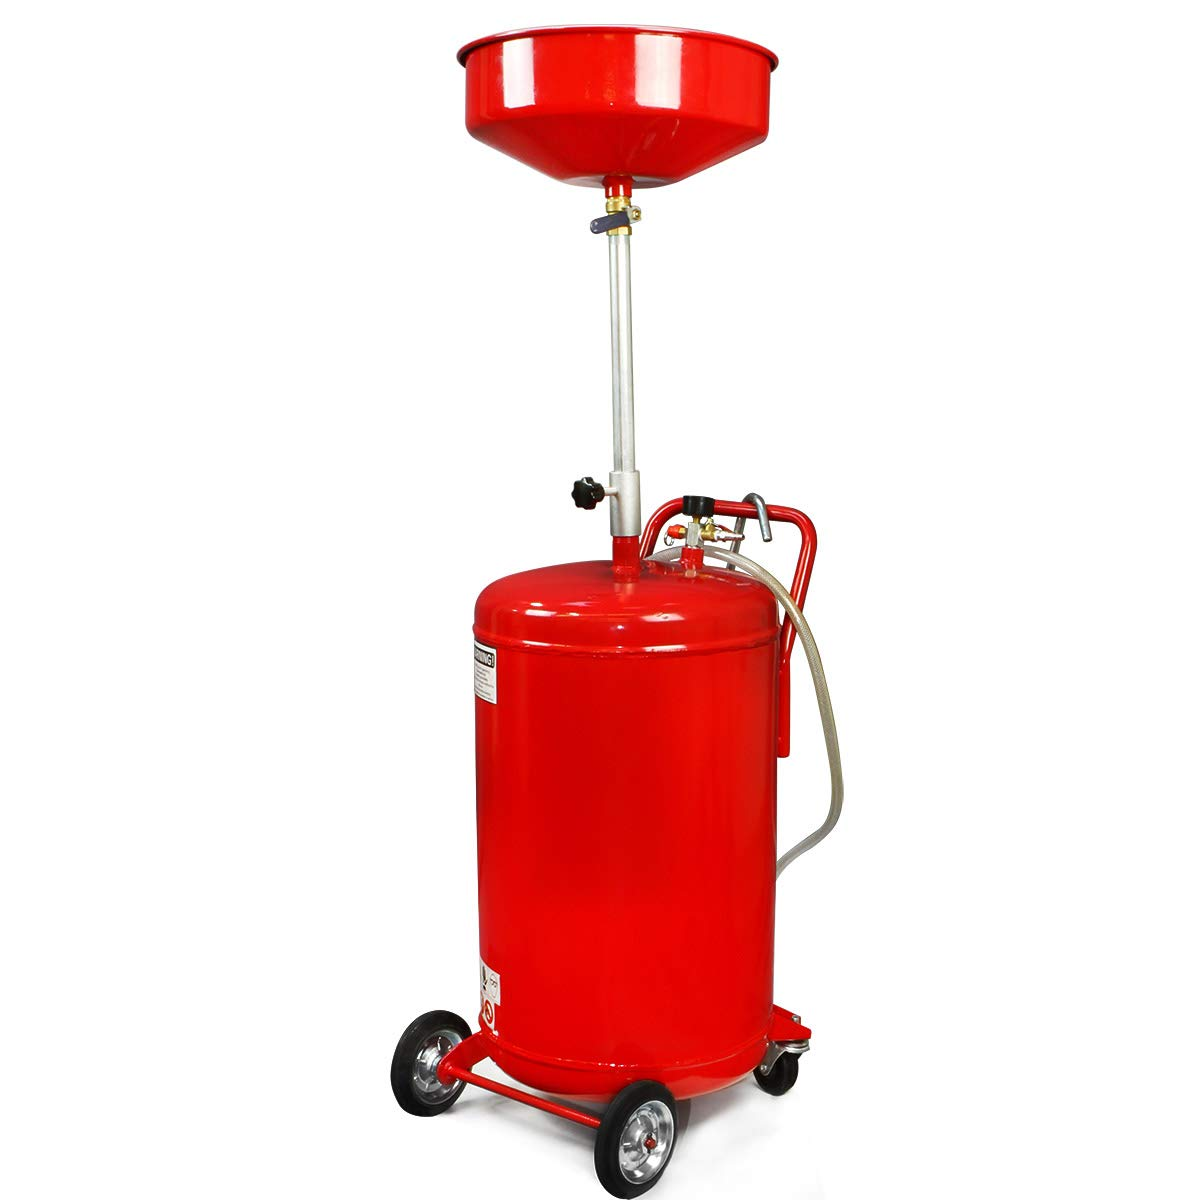 XtremepowerUS 20 Gallon Portable Waste Oil Drain Tank Air Operated Drainage Adjustable Funnel Height with Wheel, Red by XtremepowerUS (Image #2)